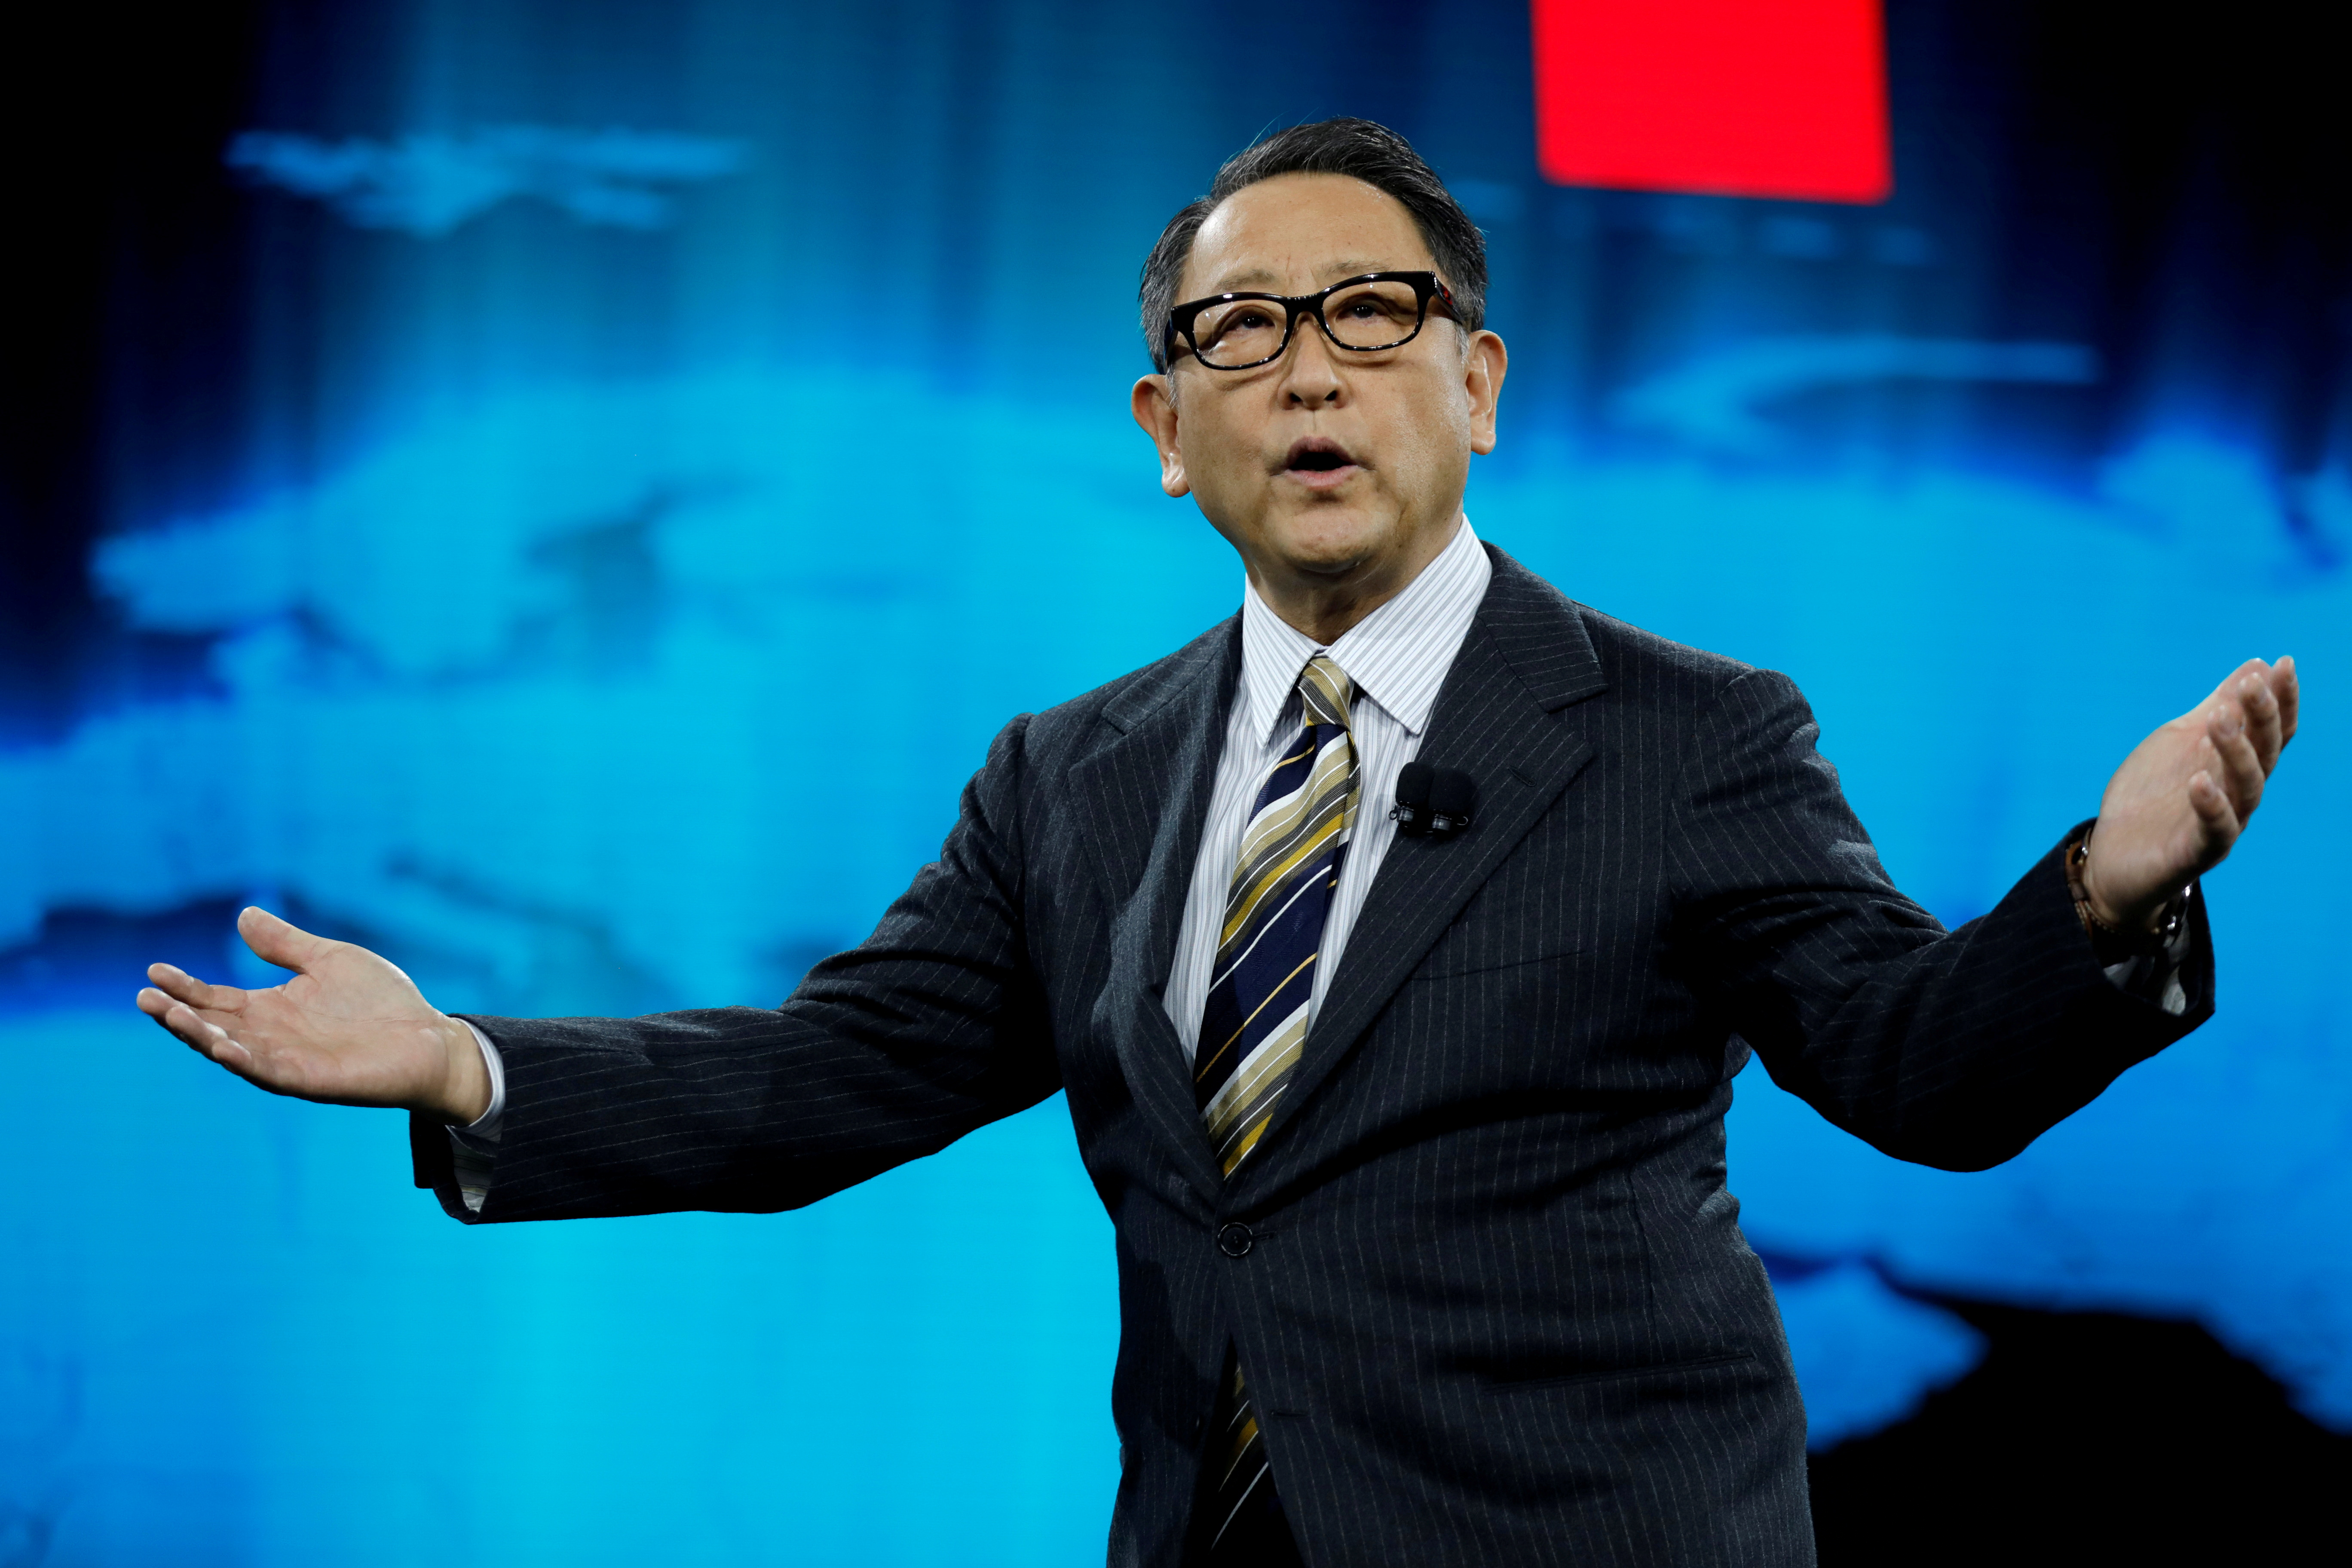 Akio Toyoda, president of Toyota Motor Corporation, speaks at a news conference, where he announced Toyota's plans to build a prototype city of the future on a 175-acre site at the base of Mt. Fuji in Japan, during the 2020 CES in Las Vegas, Nevada, U.S. January 6, 2020. REUTERS/Steve Marcus/File Photo